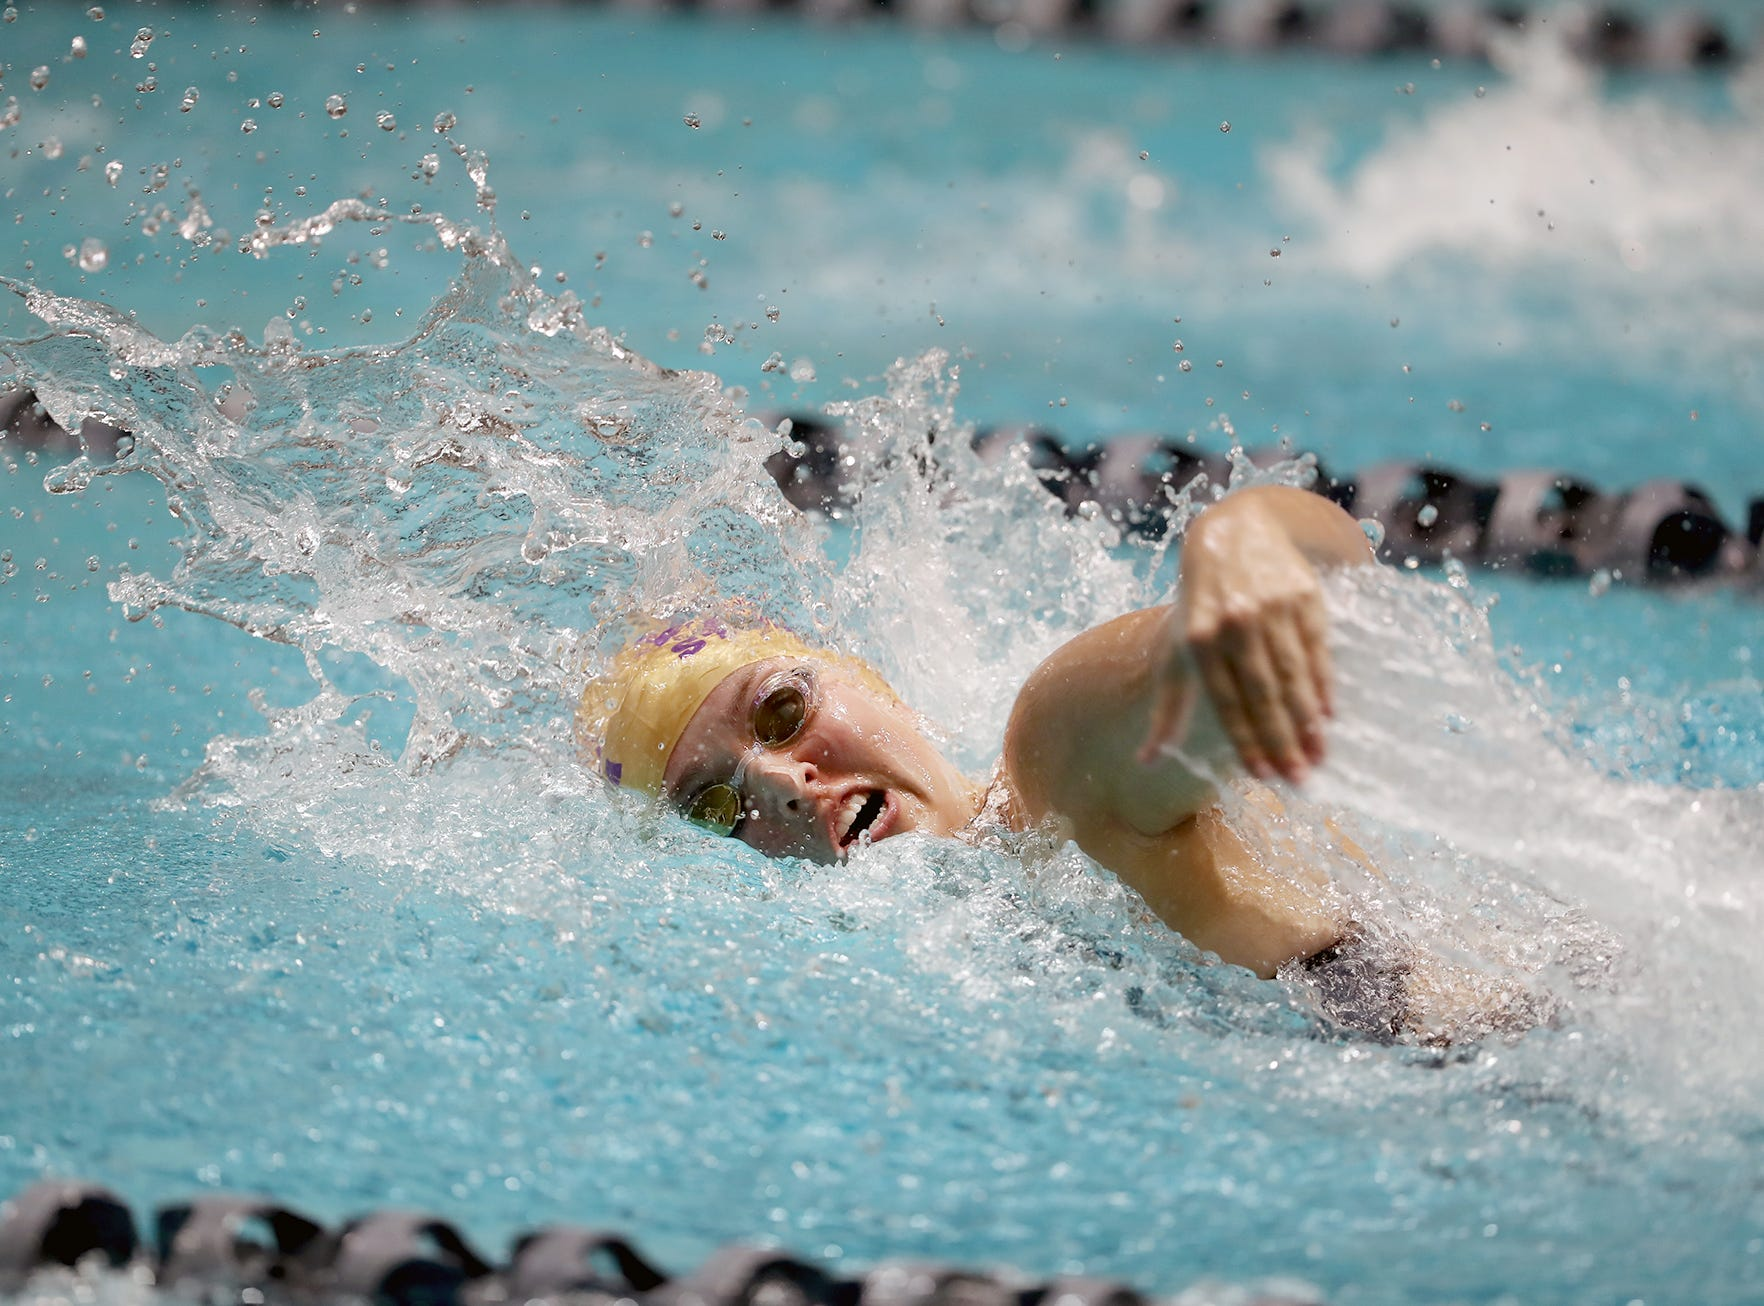 The North Kitsap Girls swim team won the team title at the 2018 2A Girls State Swim & Diving Championships on Saturday, November, 10 , 2018 at the King County Aquatics Center, in Federal Way.